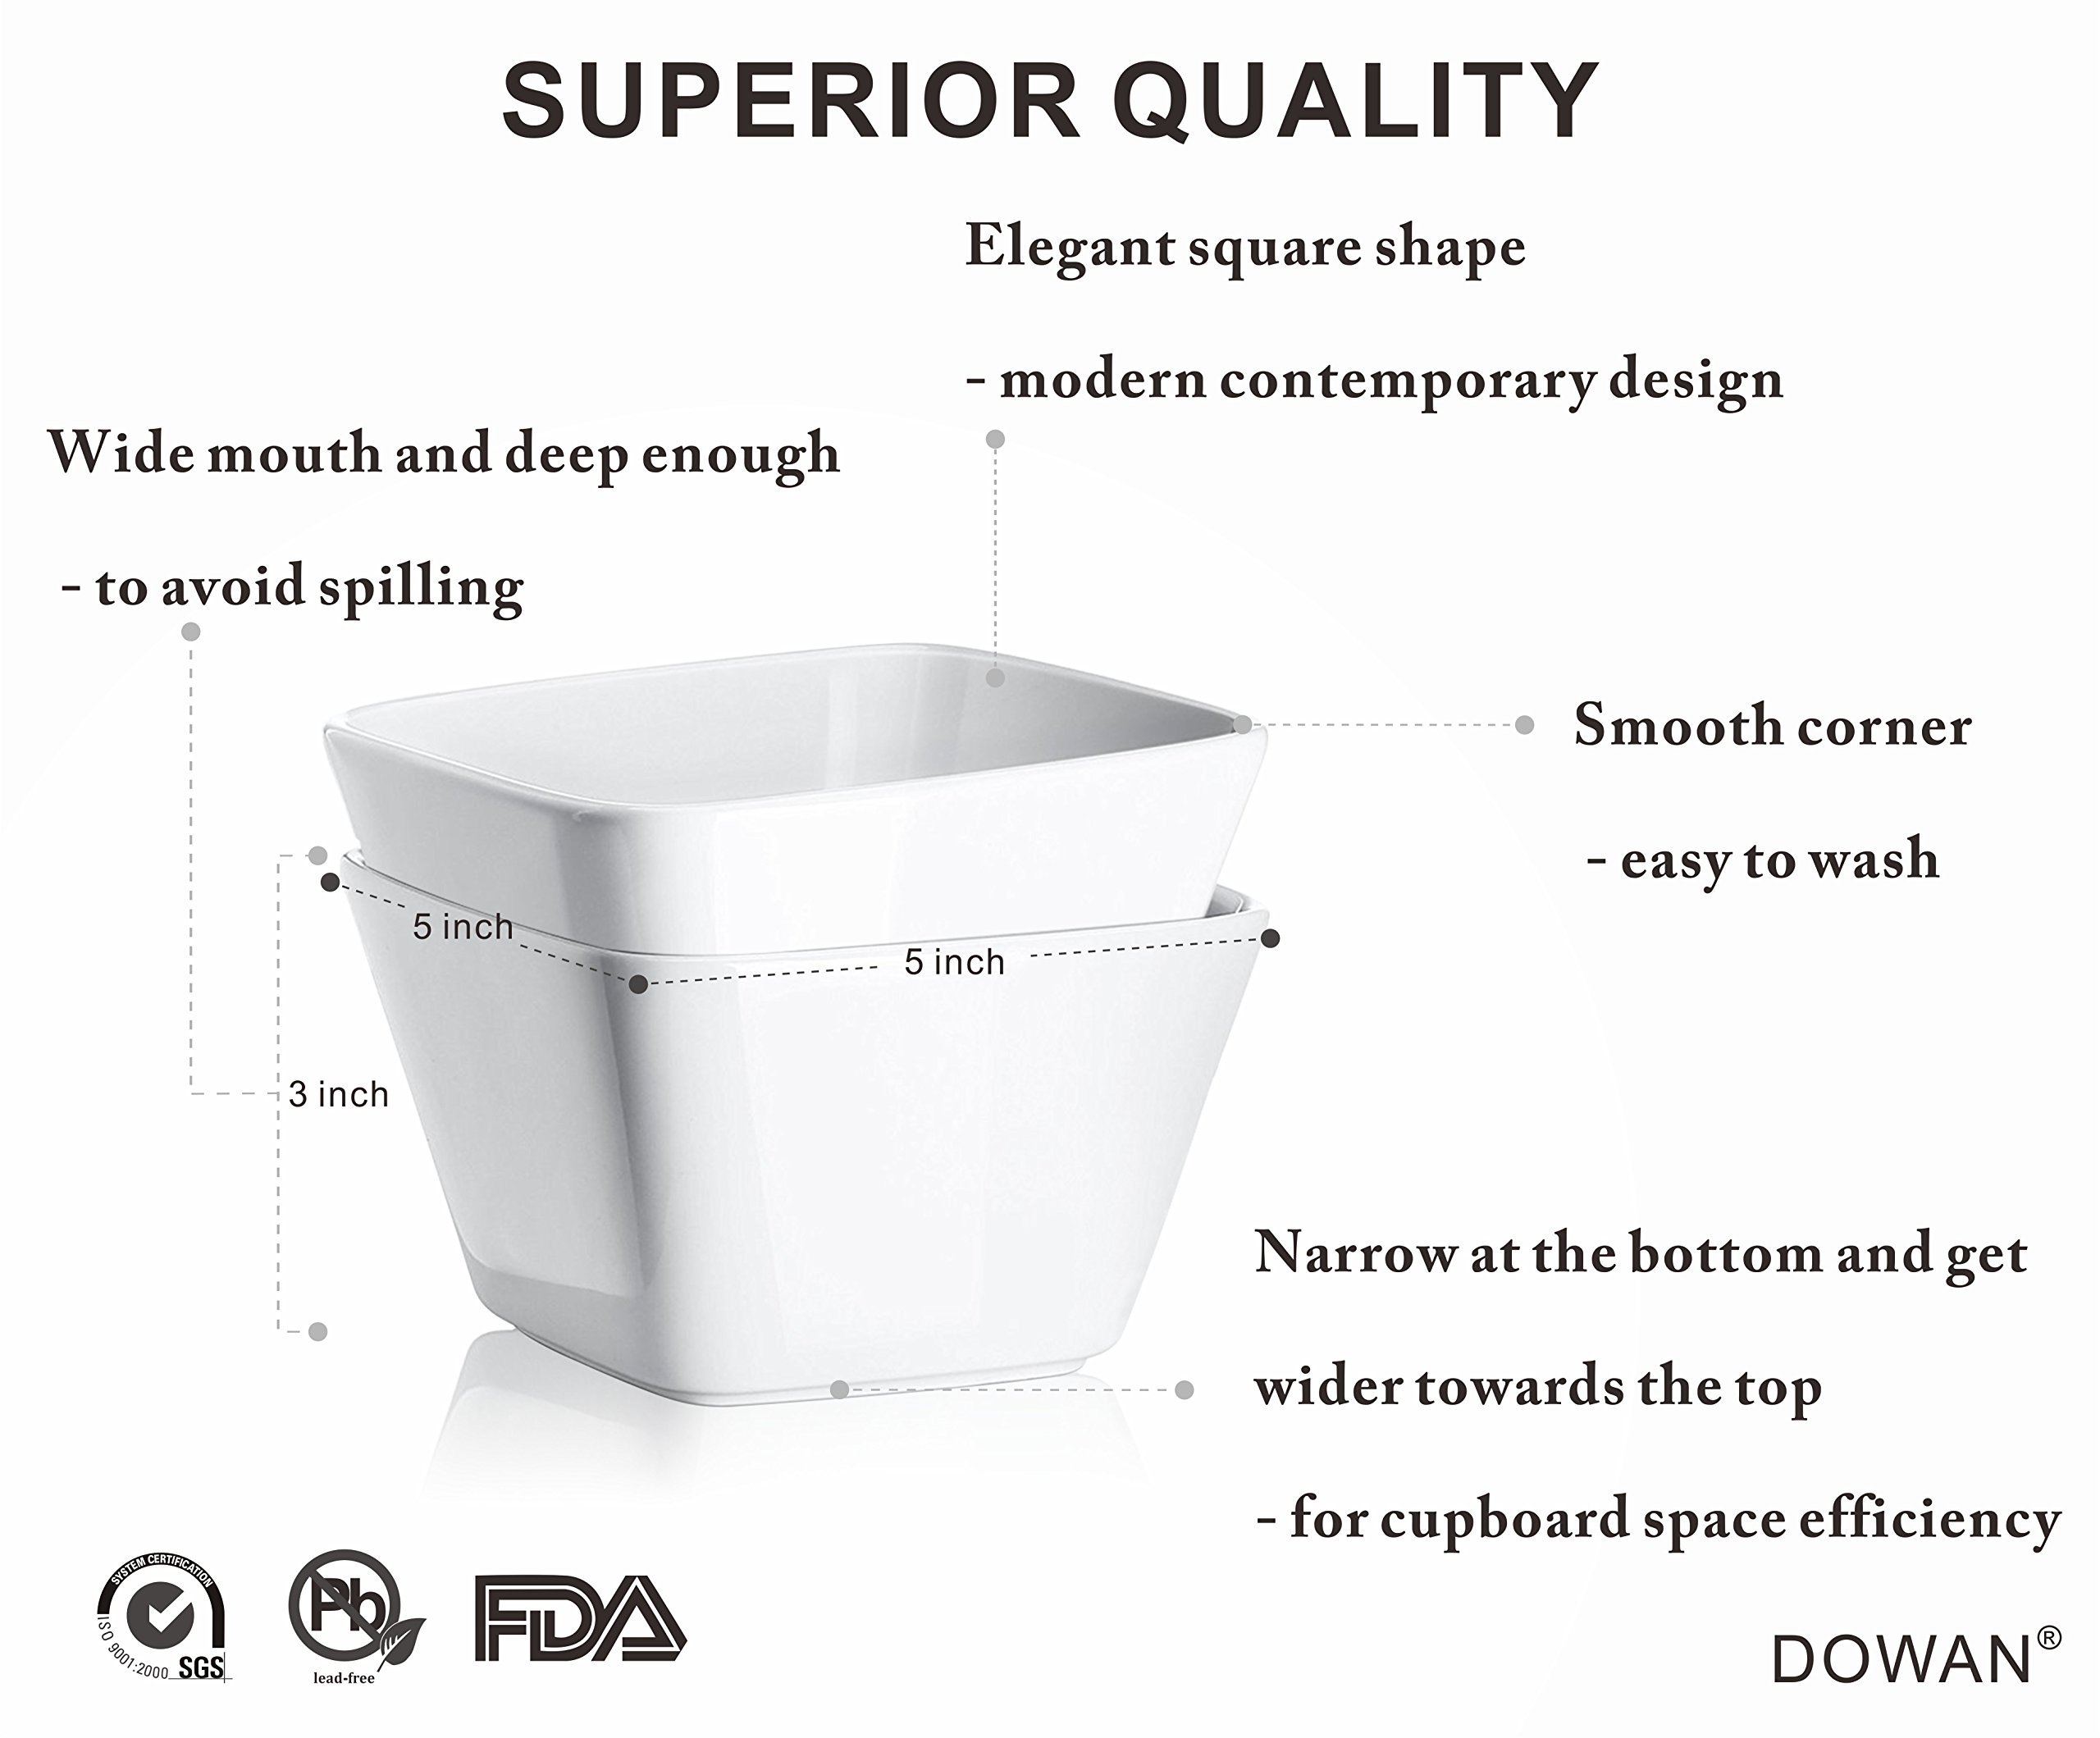 DOWAN 20 Ounce Porcelain Square Cereal Bowls - 6 Packs ,White by DOWAN (Image #4)